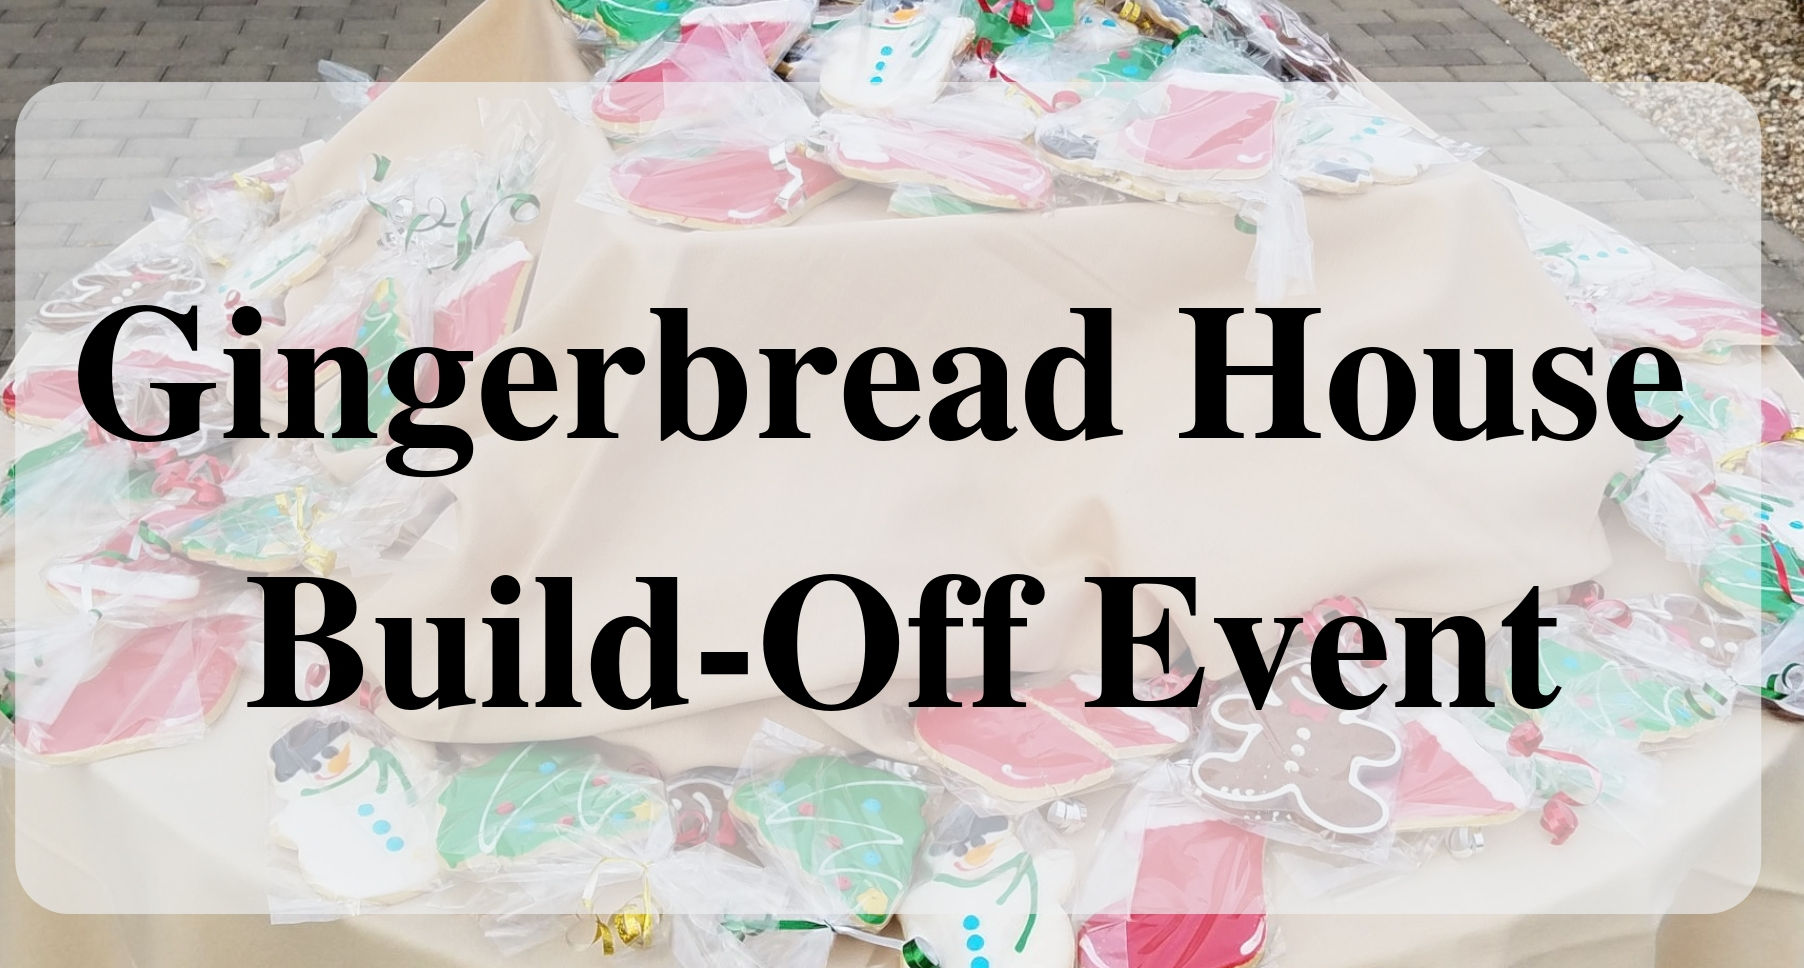 Gingerbread House Build-Off Eventmain